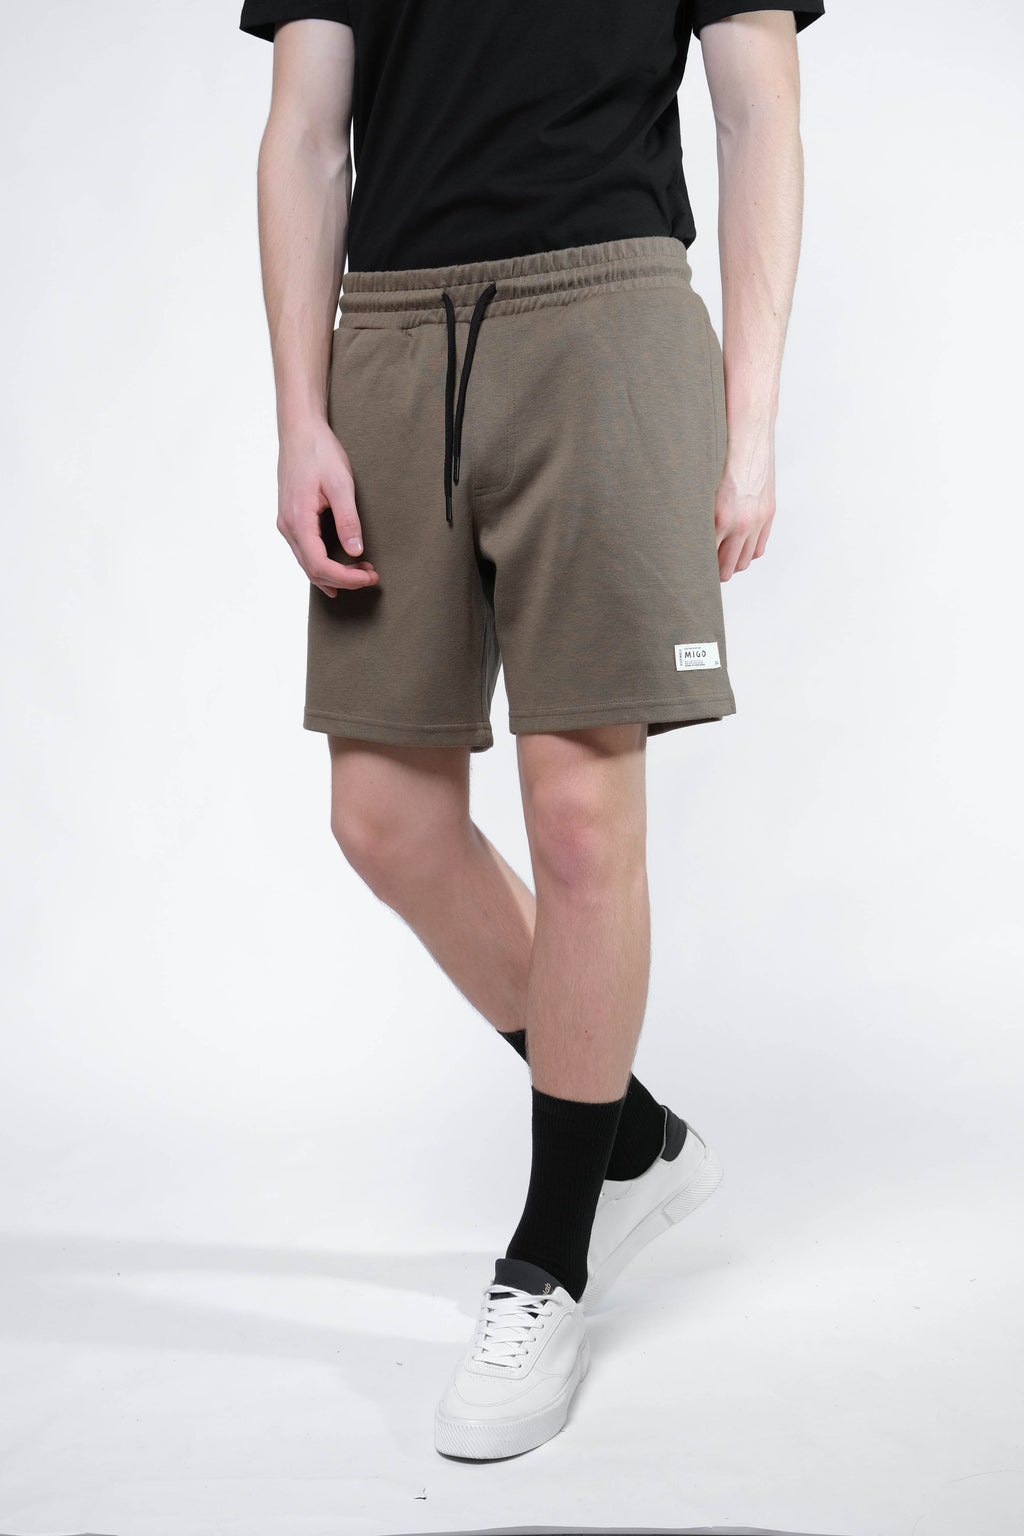 Interlock Jogger Shorts (Khaki) - [MIGO Menswear]